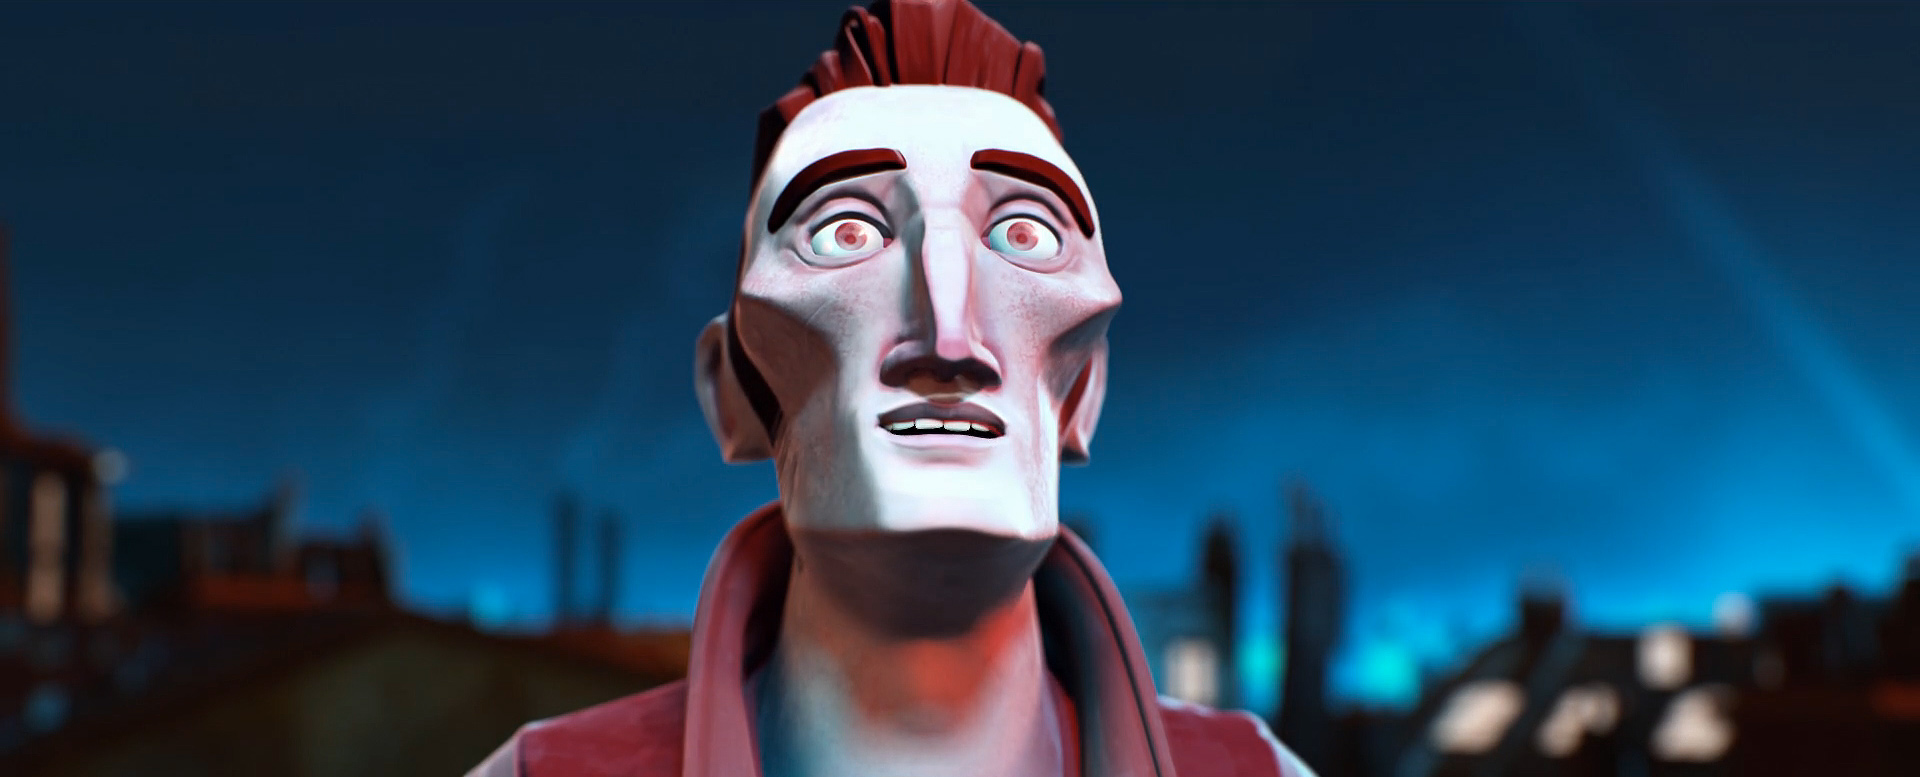 animated-action-short-walter-the-gathering-9.jpg